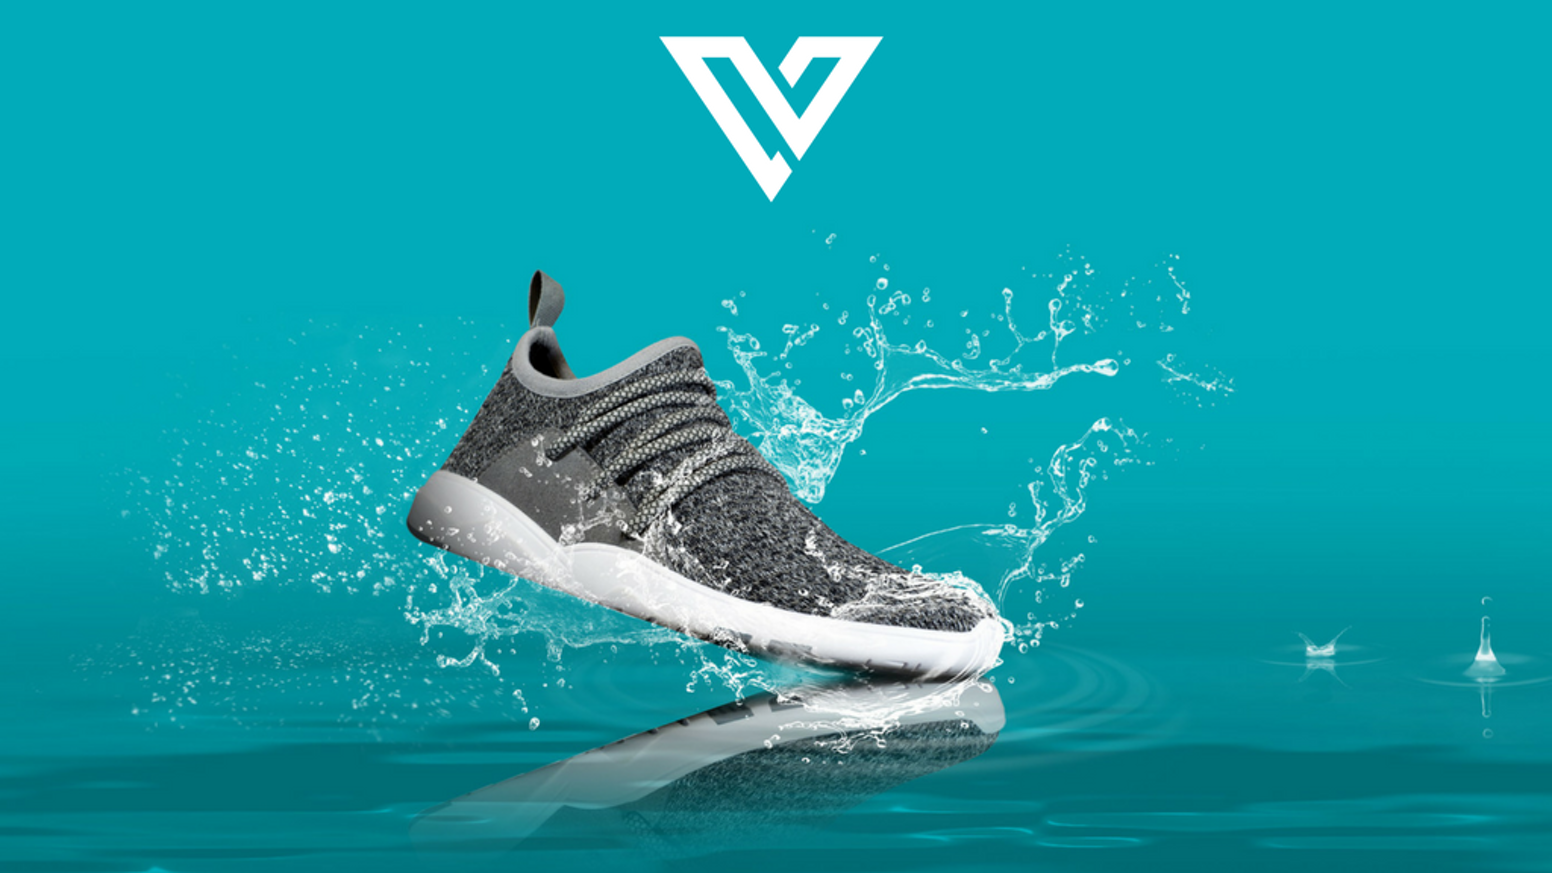 724b3455e592 Vessi - The World s First 100% Waterproof Knit Shoes by Vessi ...